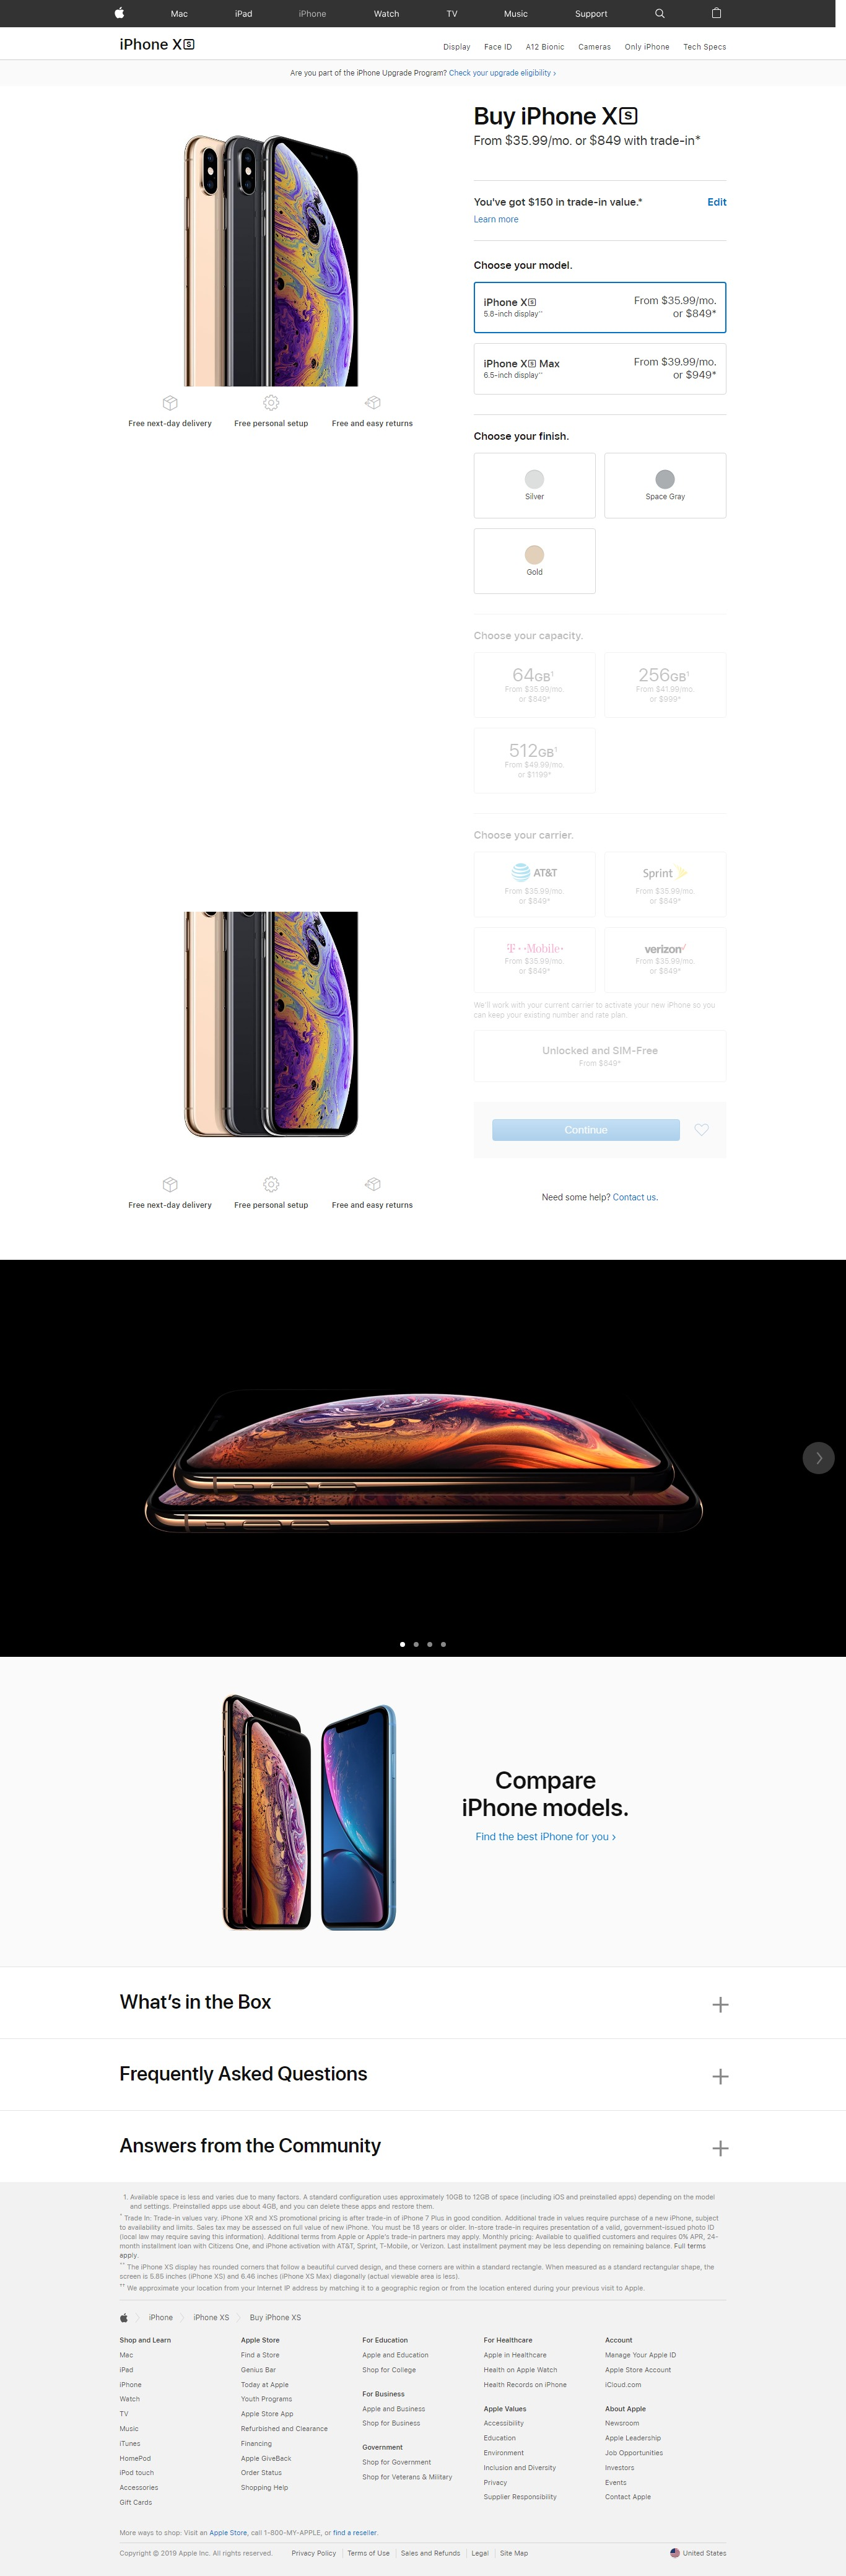 iPhone's product page optimization example